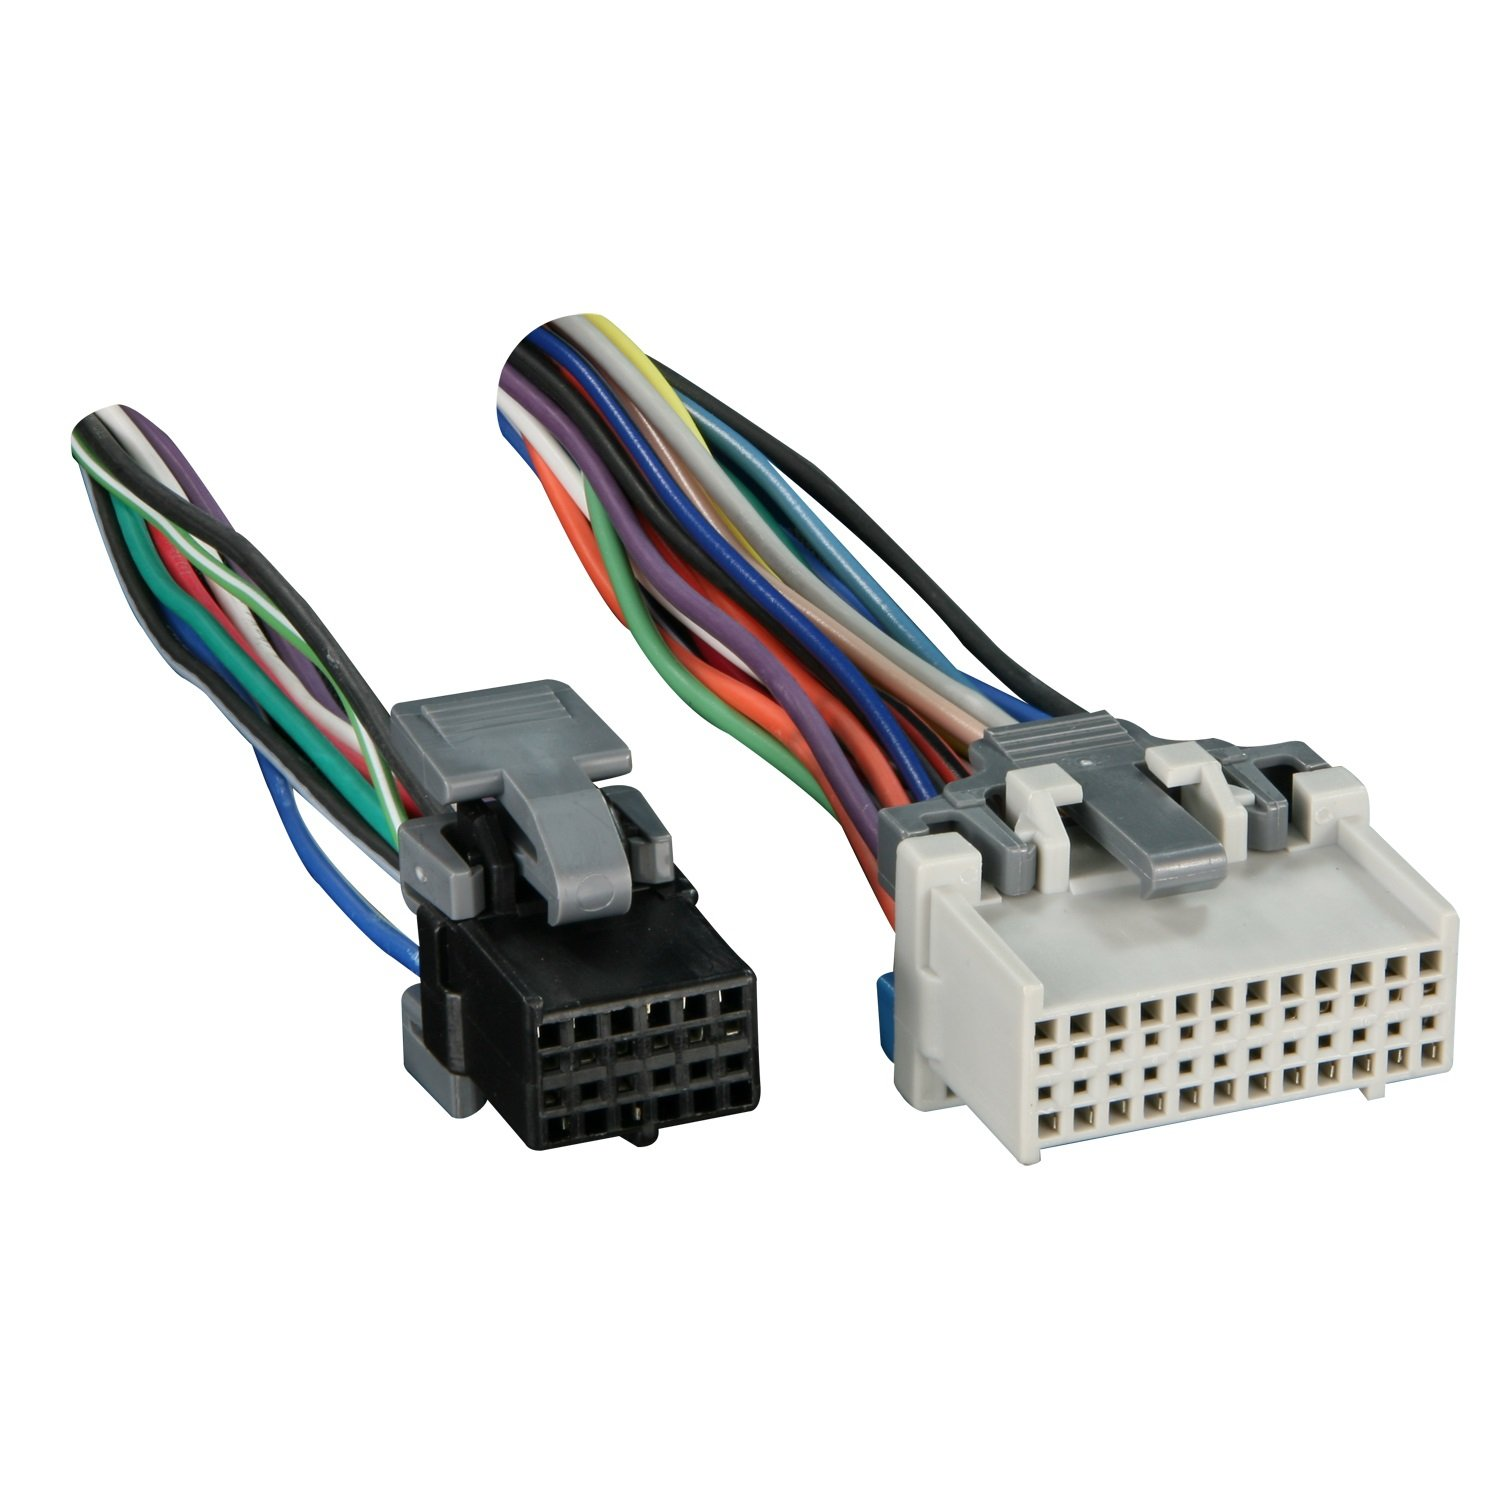 711log4bdML._SL1500_ amazon com metra turbowires 71 2003 1 wiring harness car electronics gm wiring harness connectors at eliteediting.co